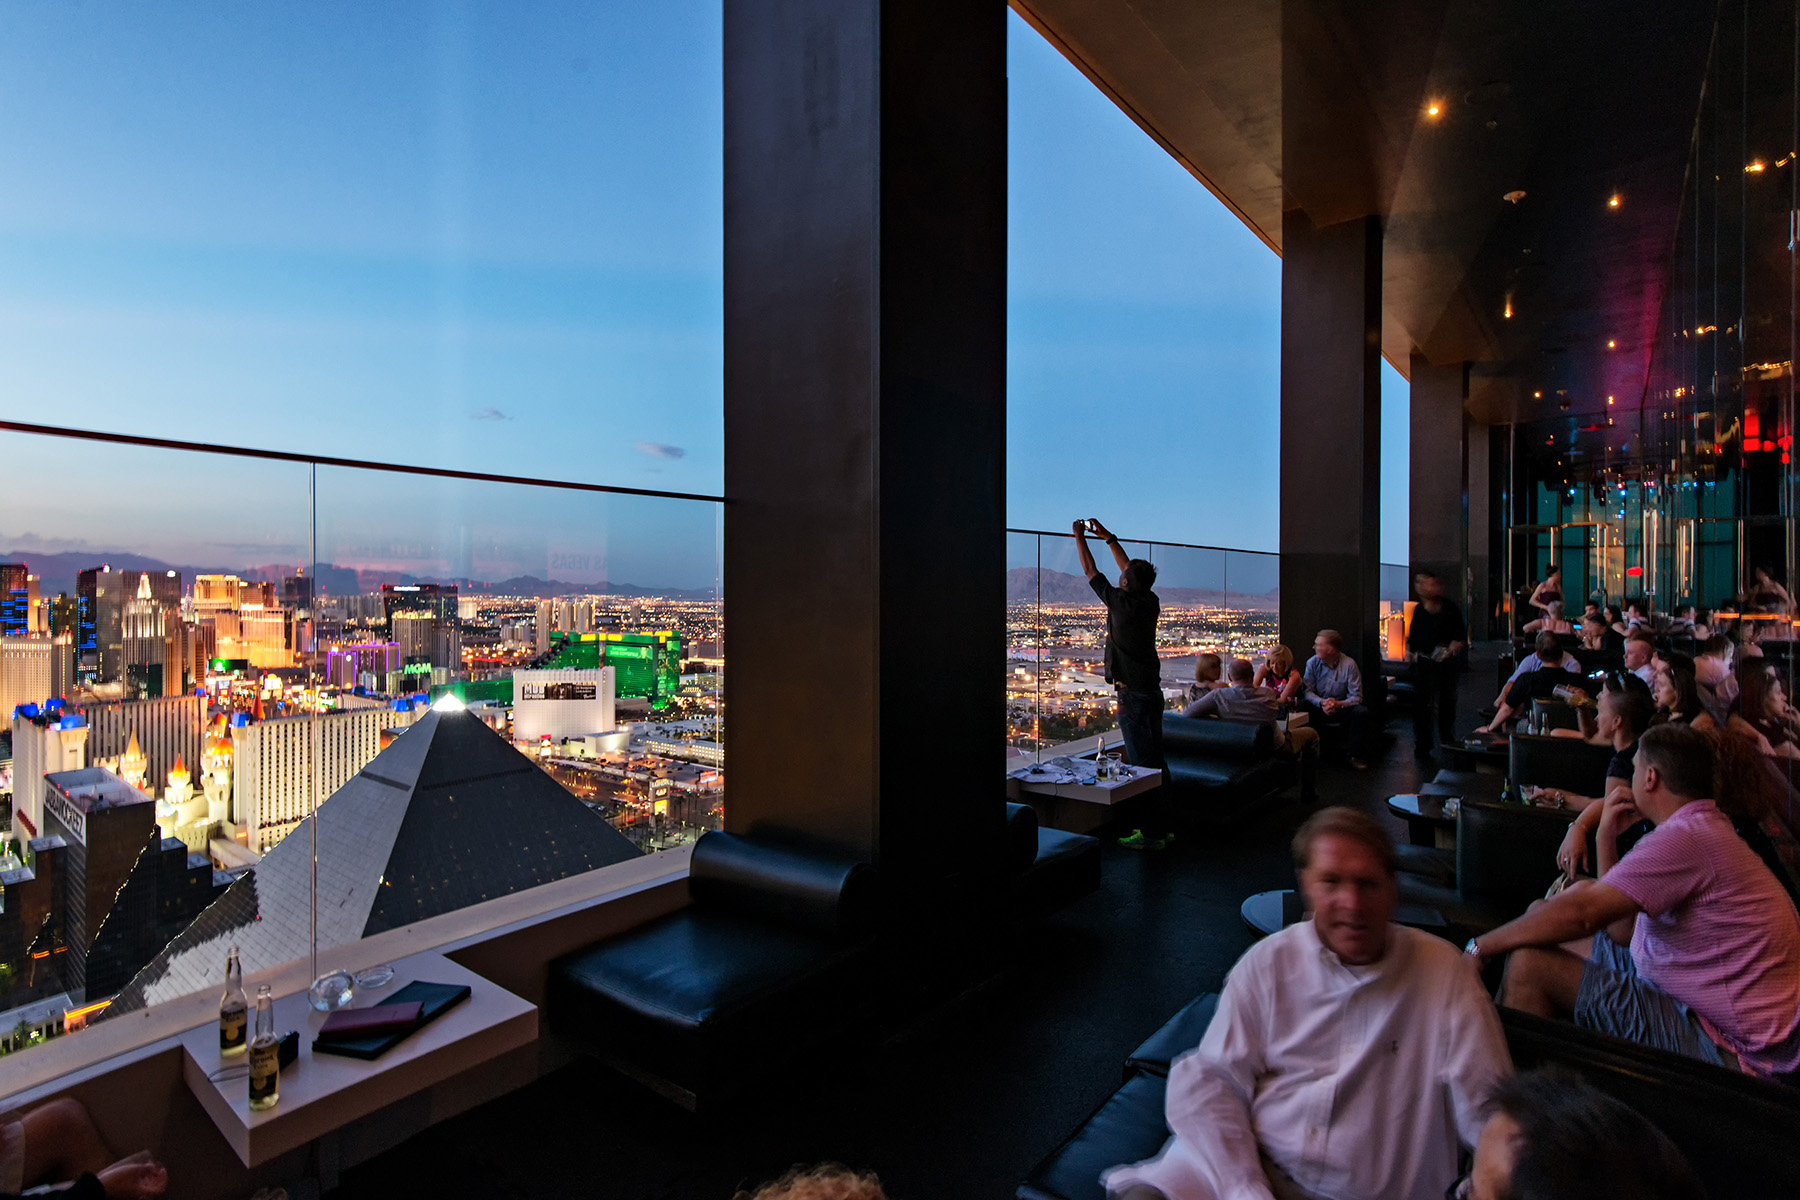 People enjoying drinks and cocktails at the THEHotel MiX Lounge terrace and Las Vegas Skyline at the blue Hour